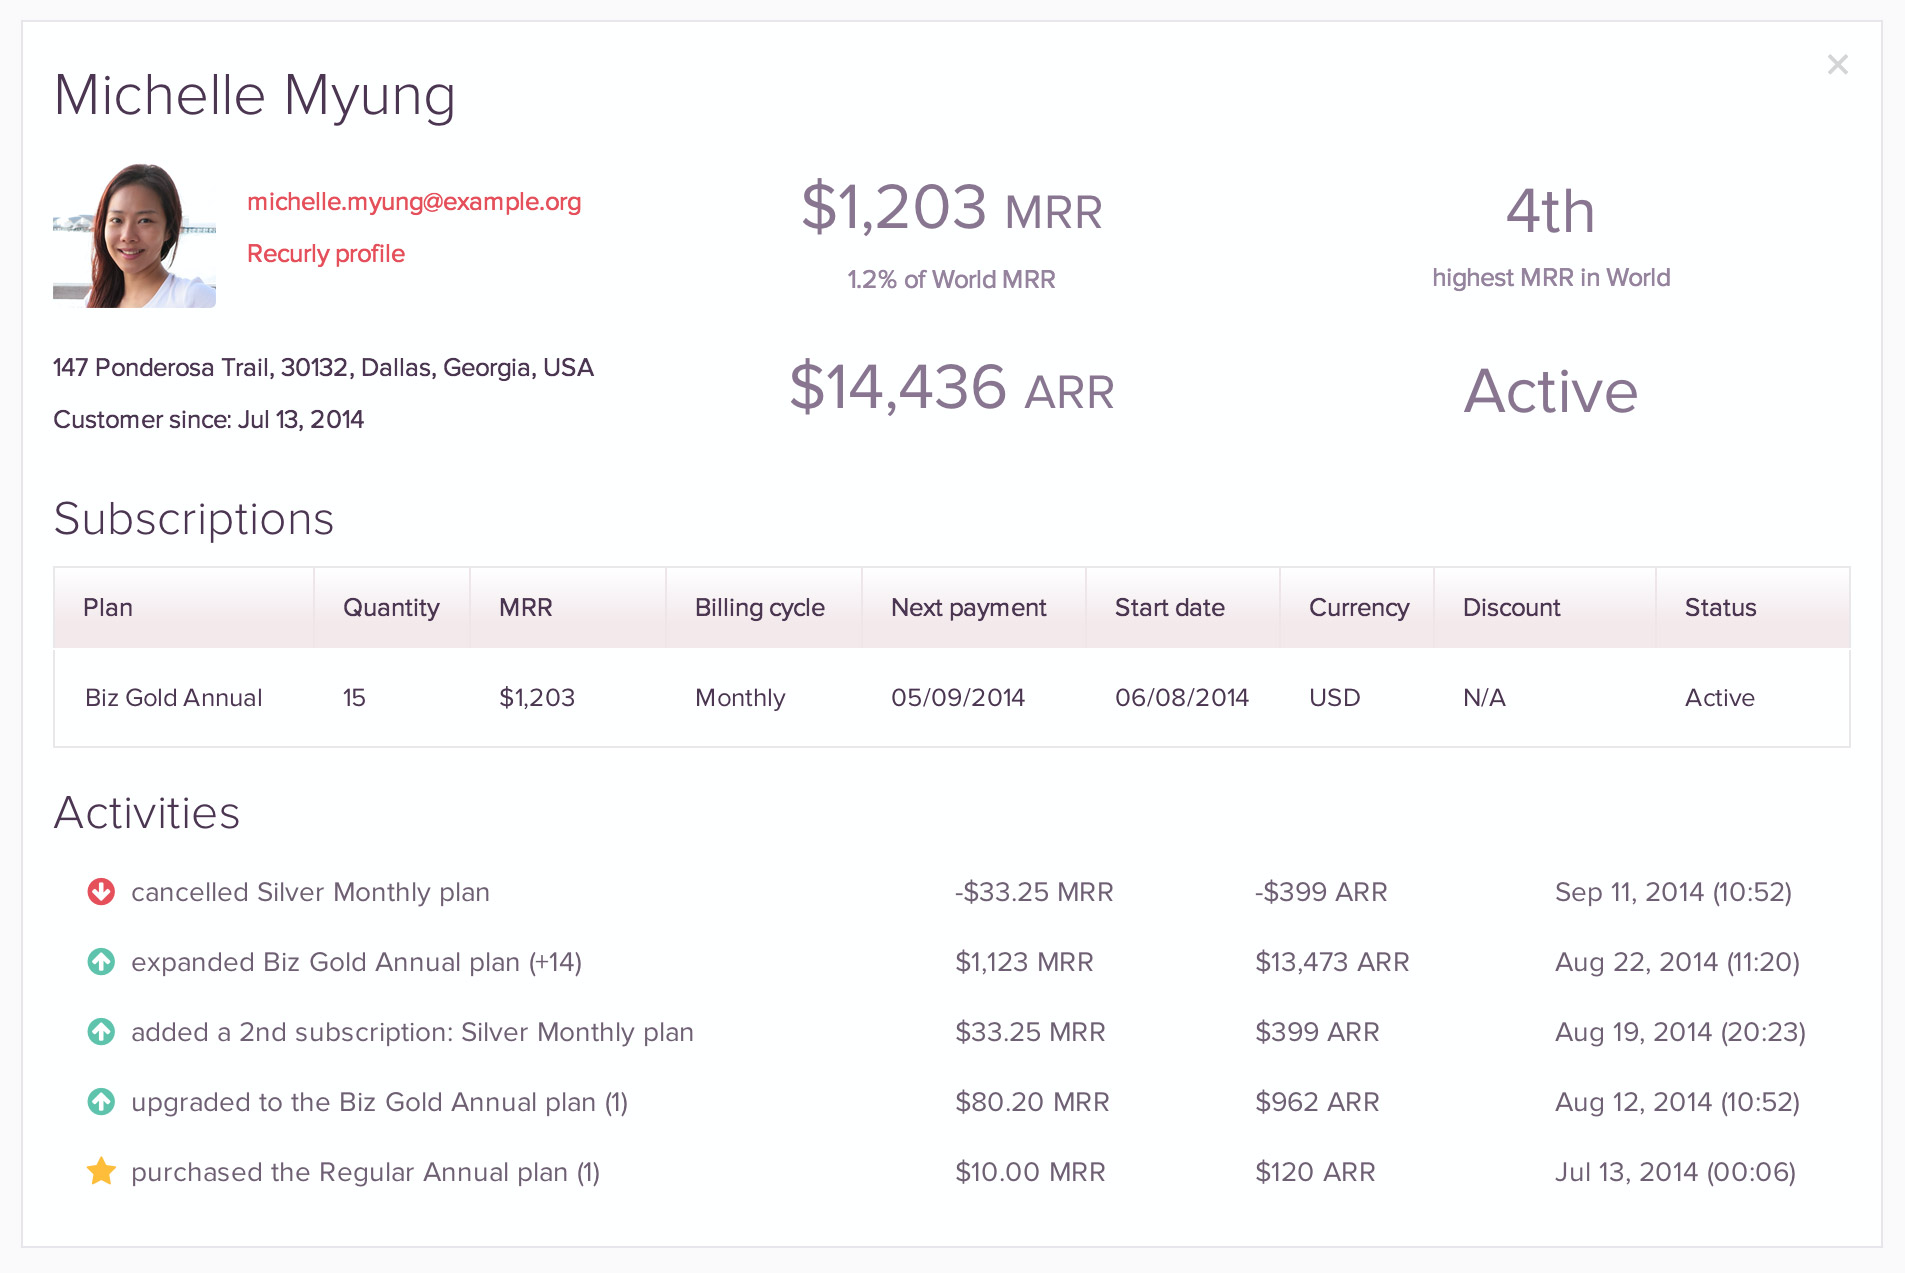 ChartMogul includes customer profiles with full subscription histories